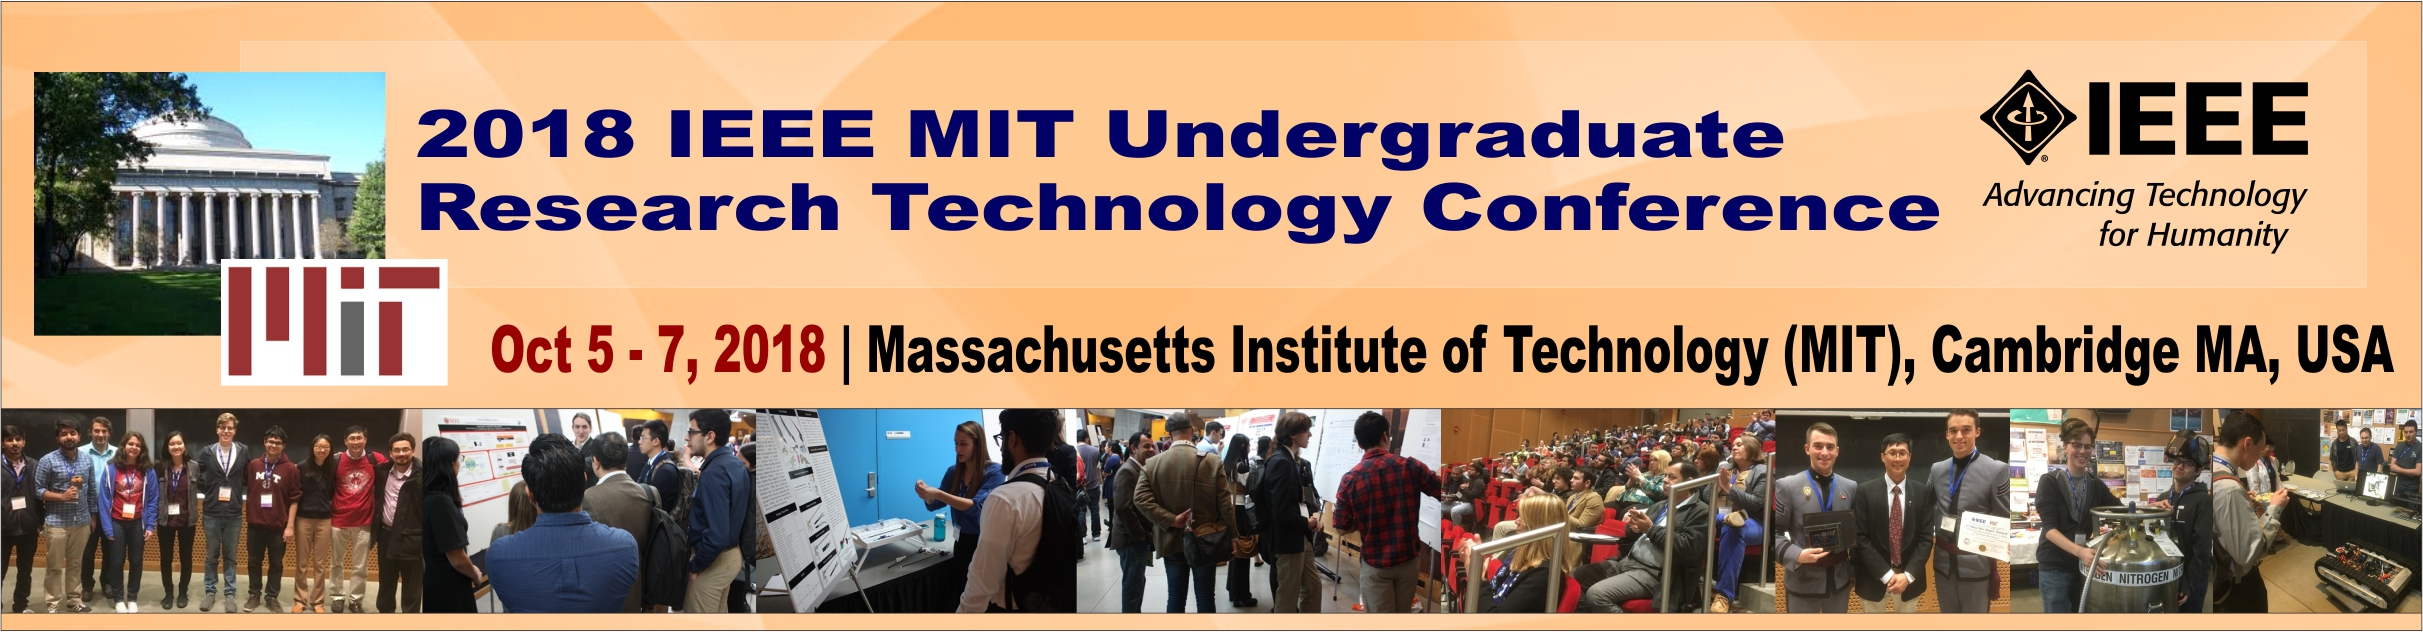 mit research papers